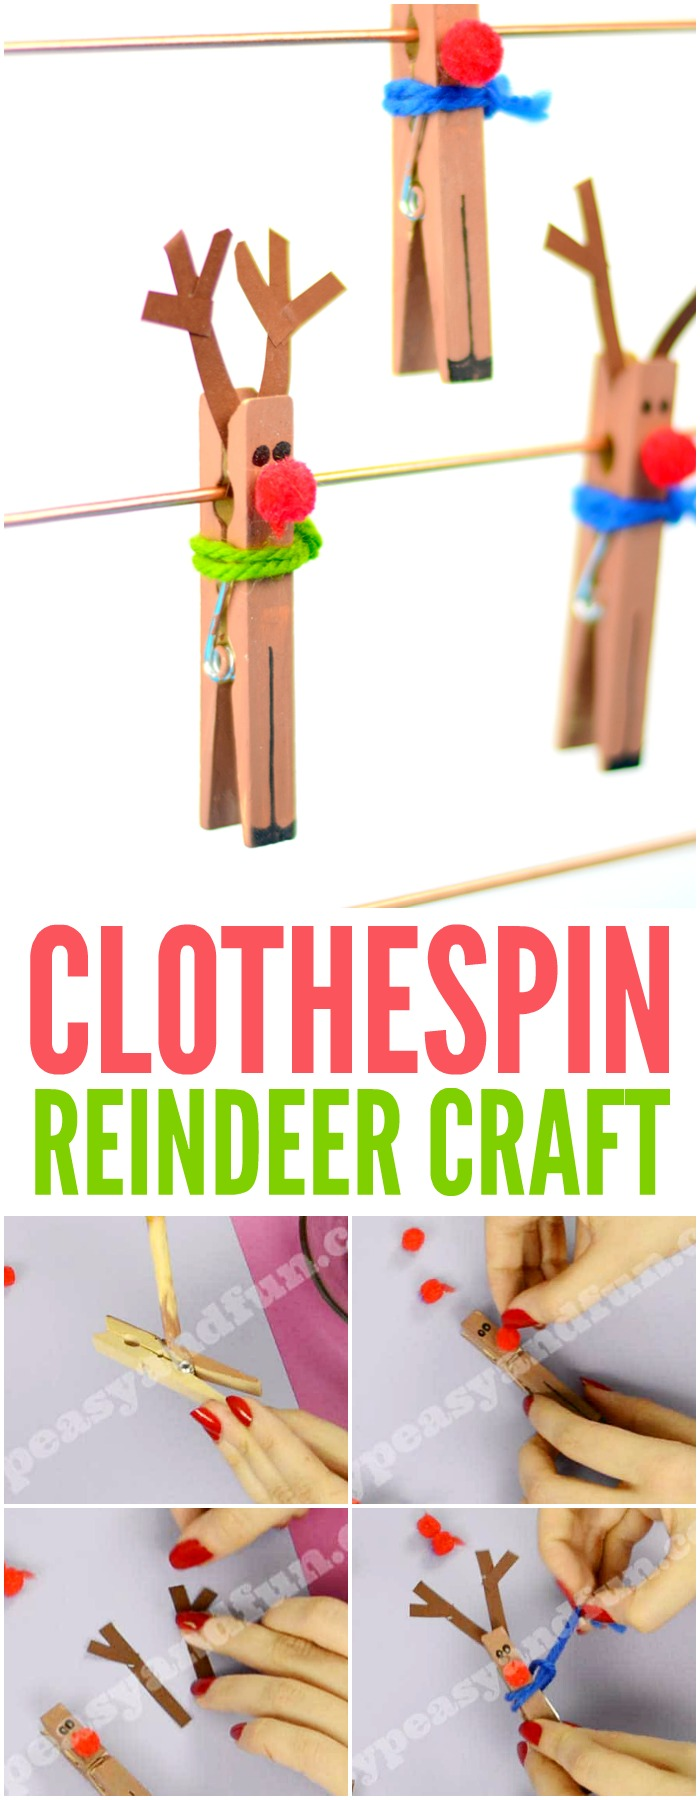 Clothespin Reindeer Craft For Kids Super Fun And Simple Christmas Idea To